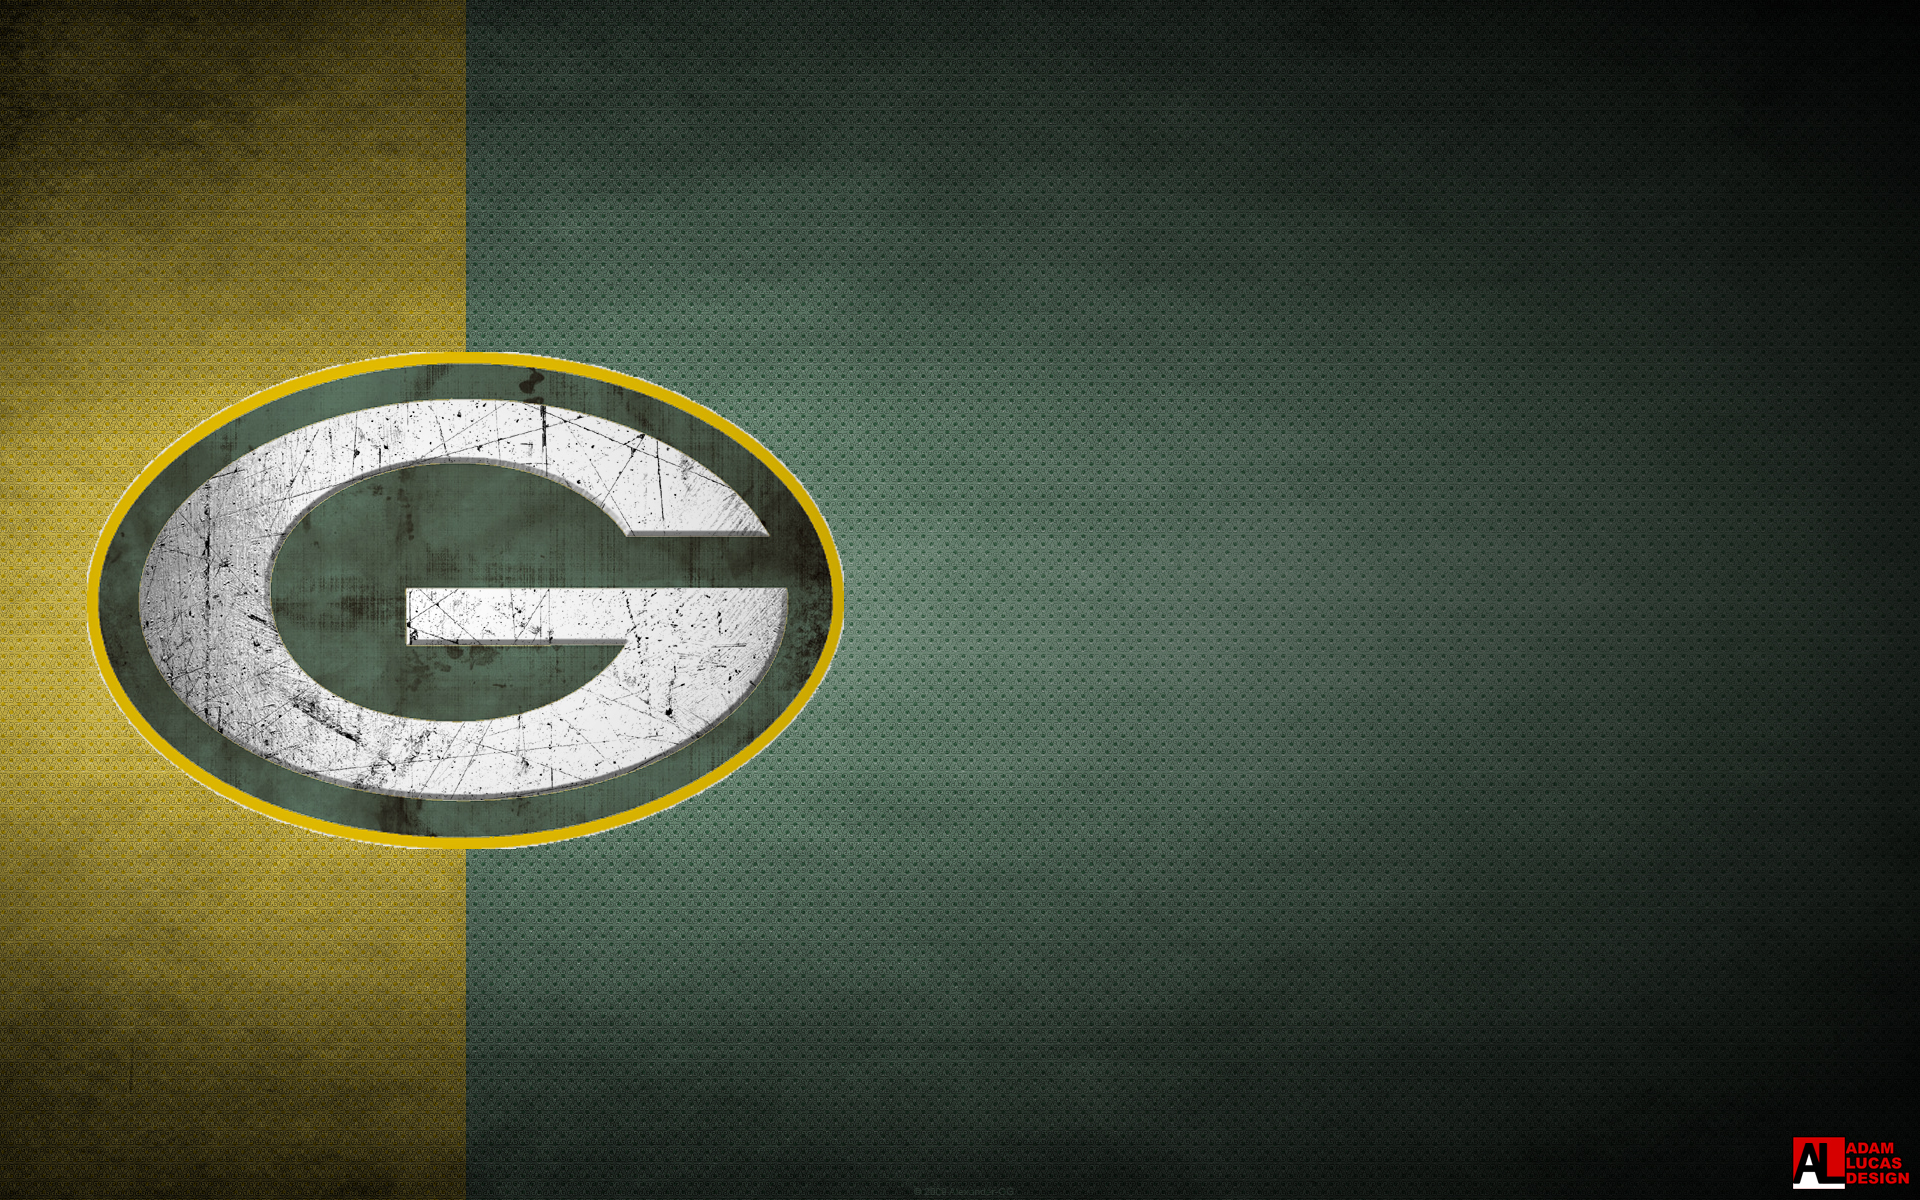 Green Bay Packer Wallpaper: NFL (NFC) Logo Wallpaper (Mobile And Desktop)